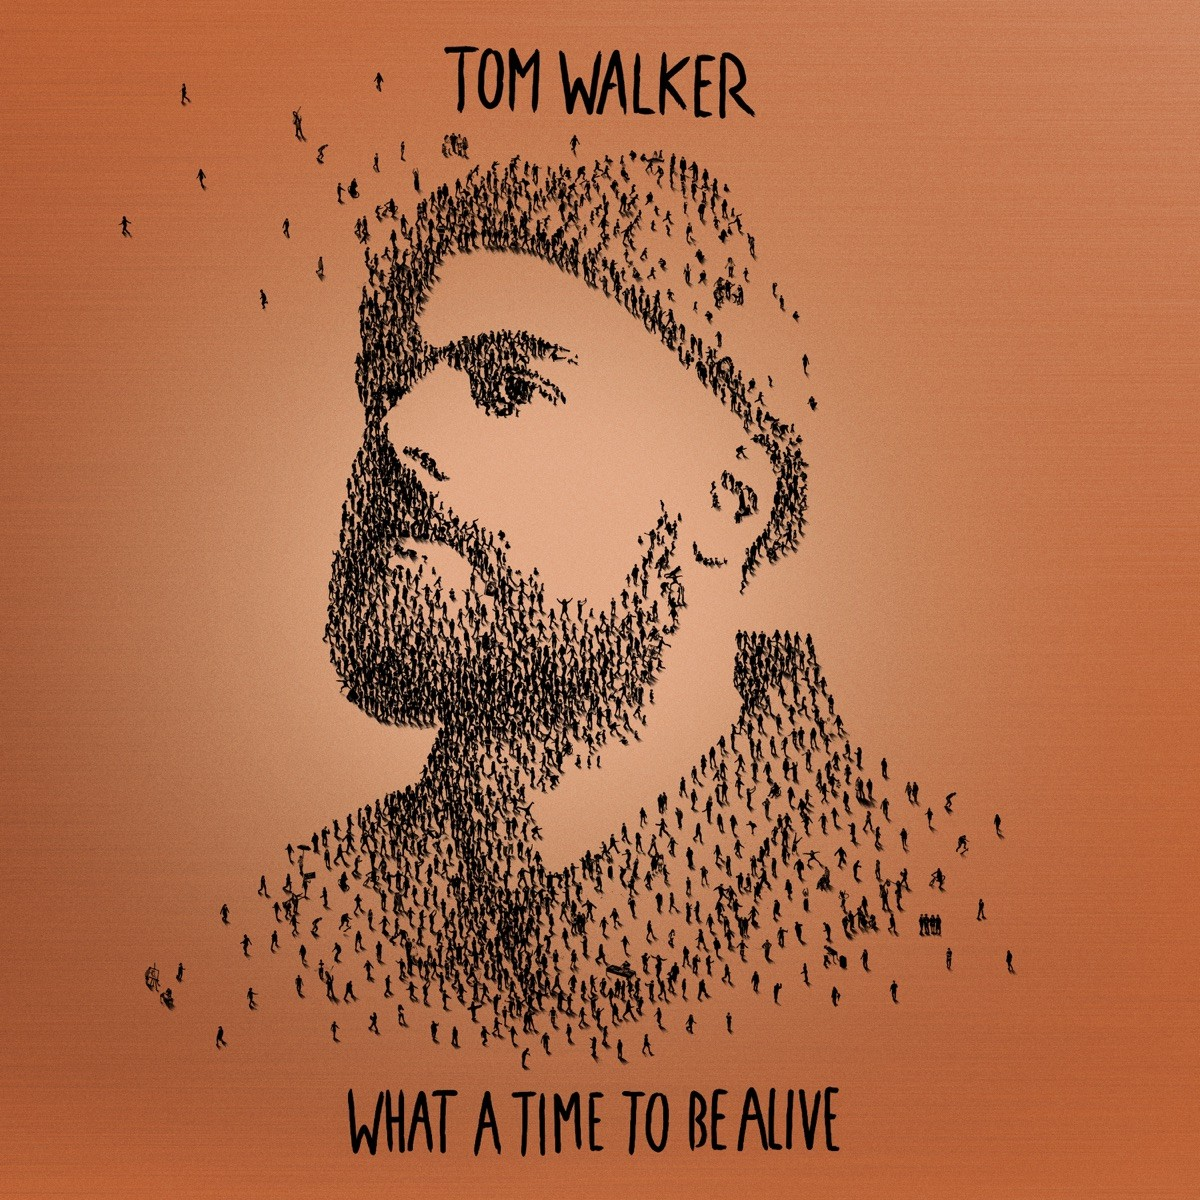 Tom Walker - What a Time To Be Alive (Deluxe Edition) CD - 19439702422